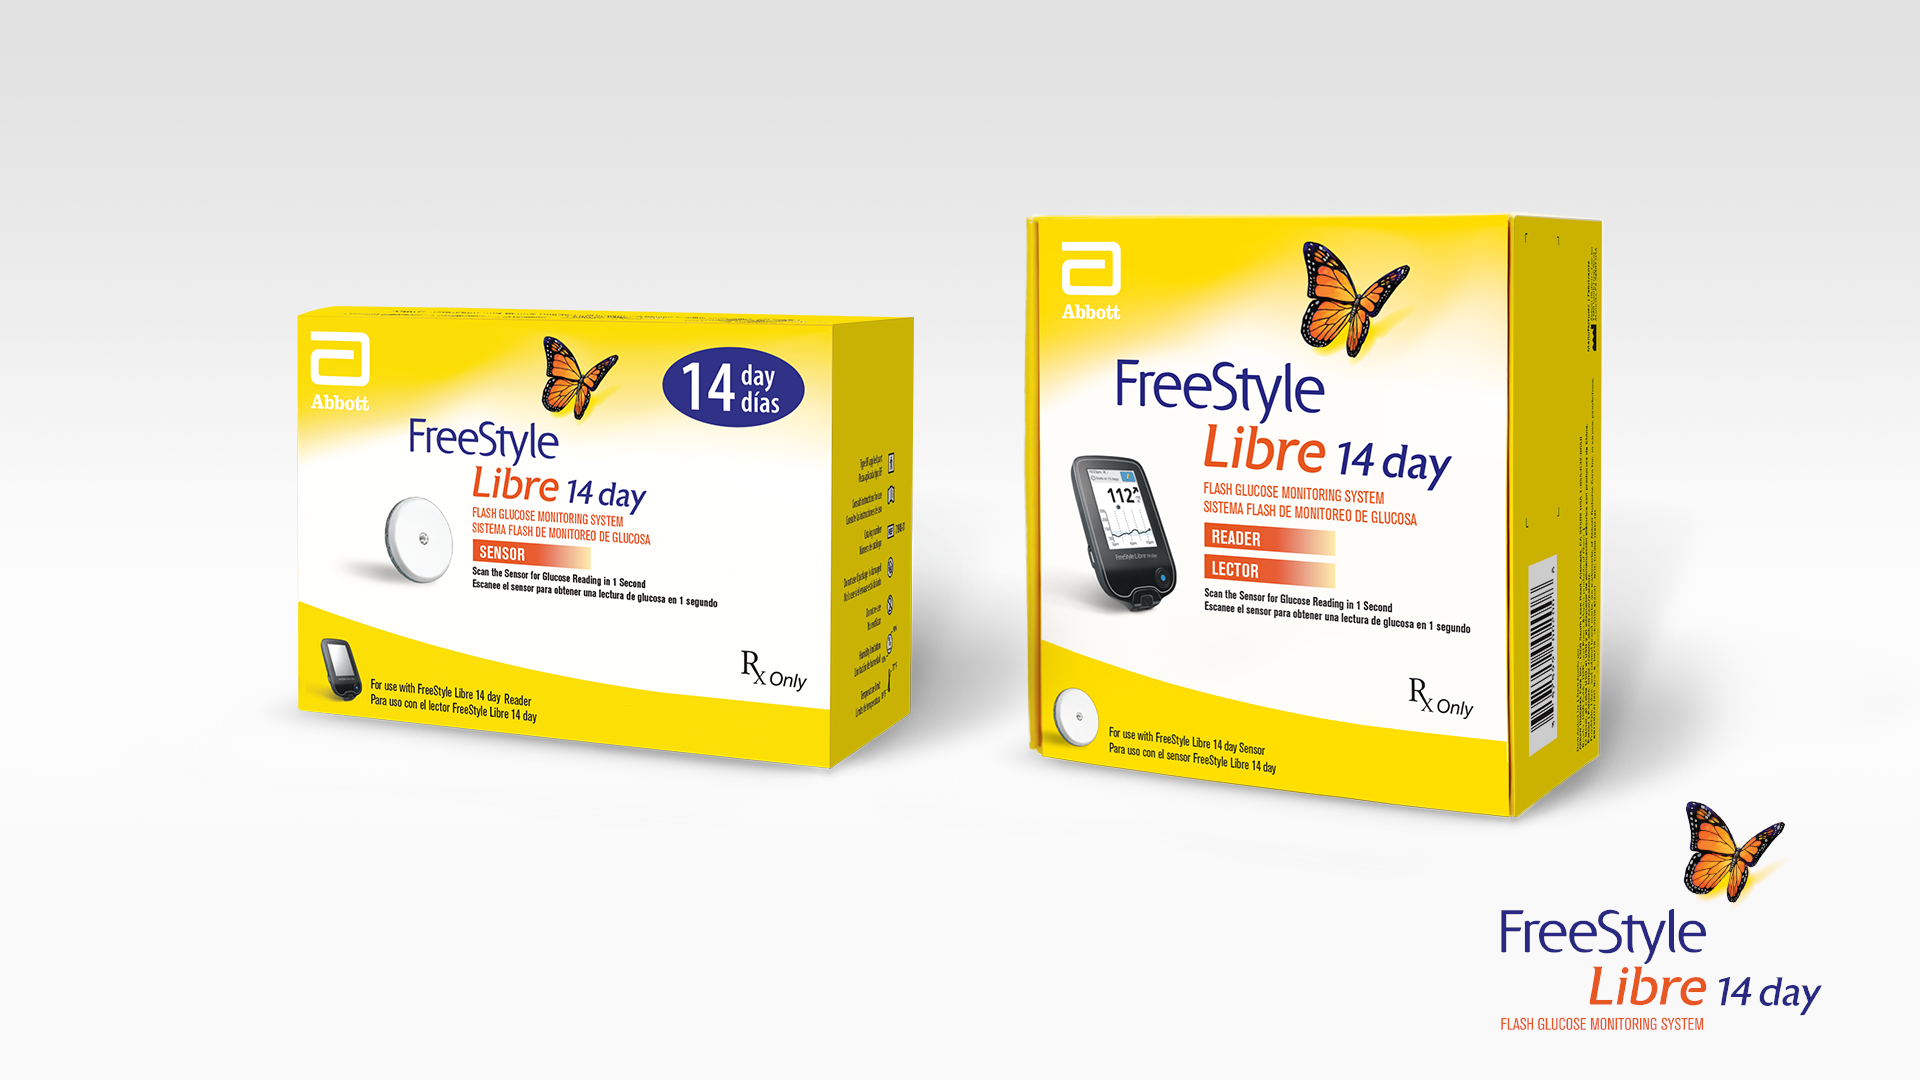 Support - Overview | The FreeStyle Libre System